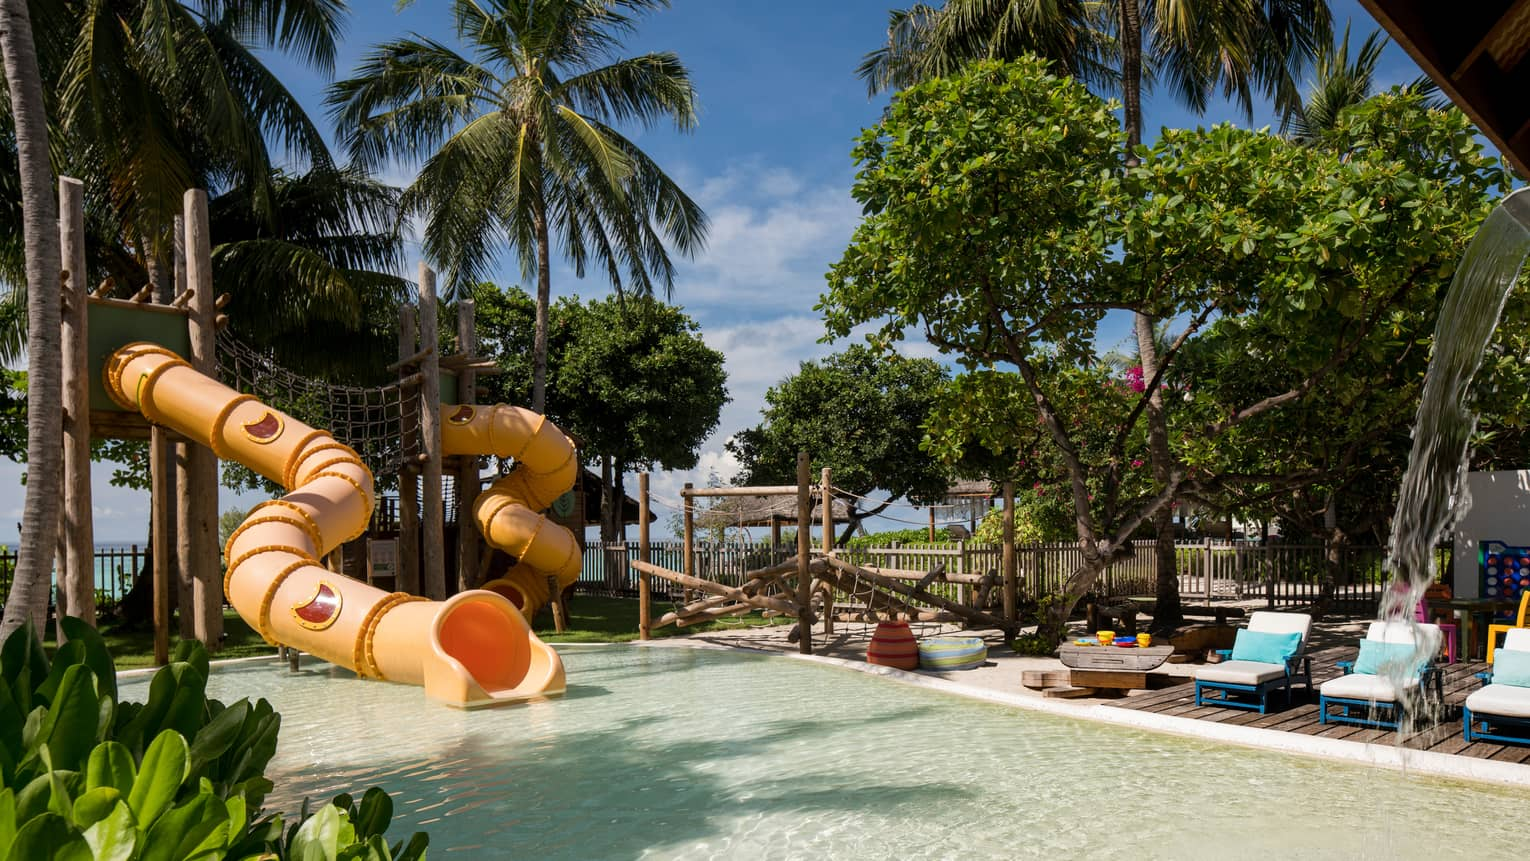 Kids Club children's pool with winding yellow water slide under palm trees